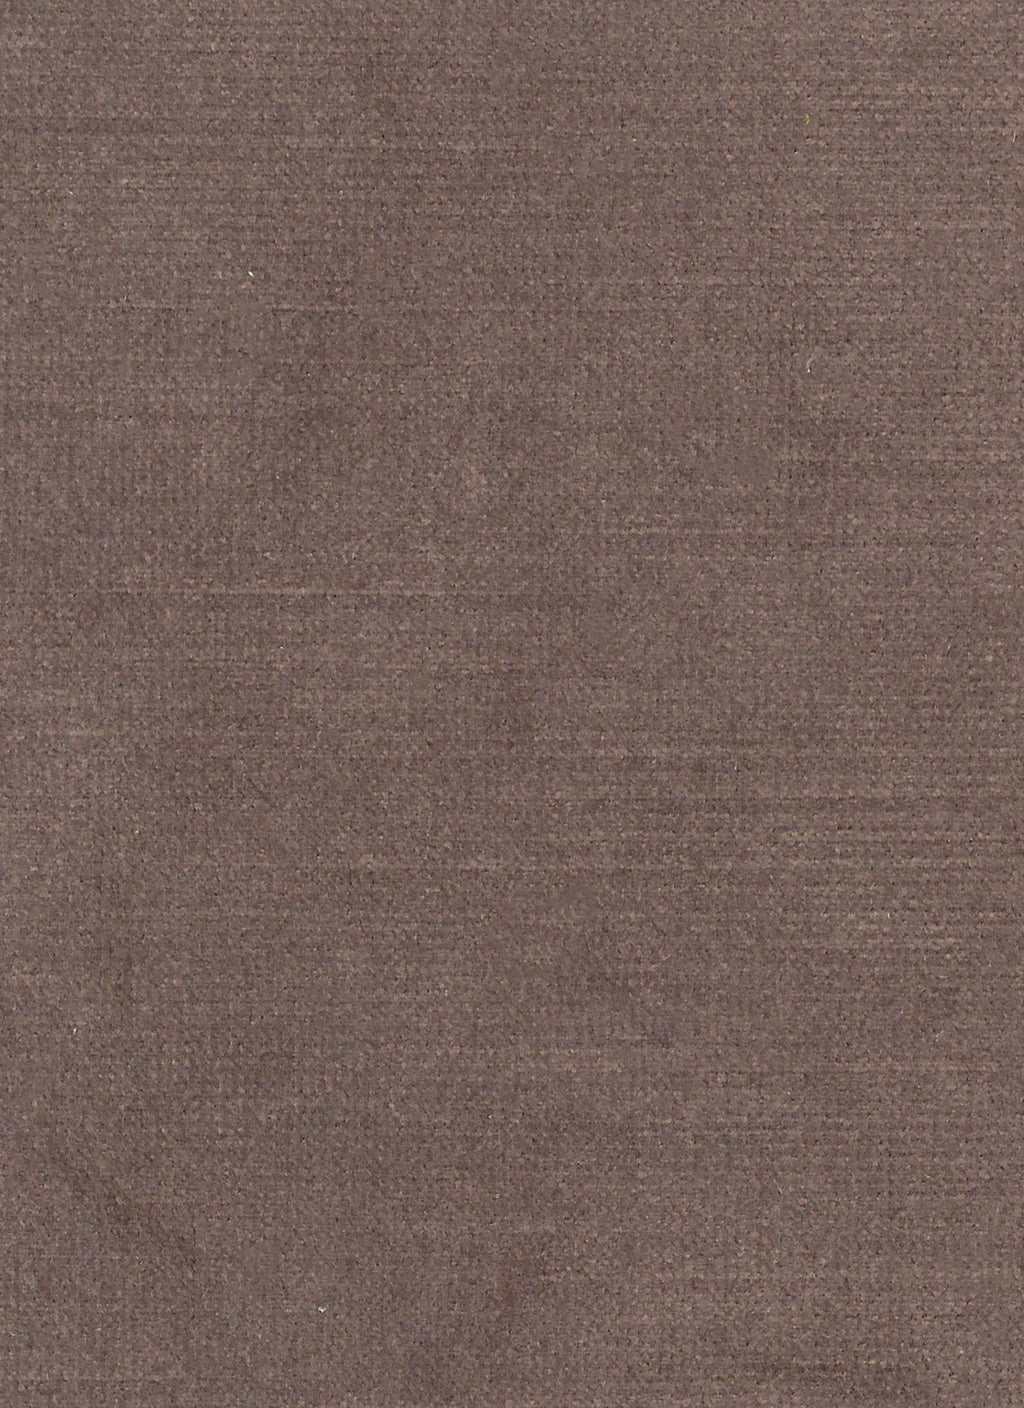 Brussels CL Teaberry Velvet Upholstery Fabric